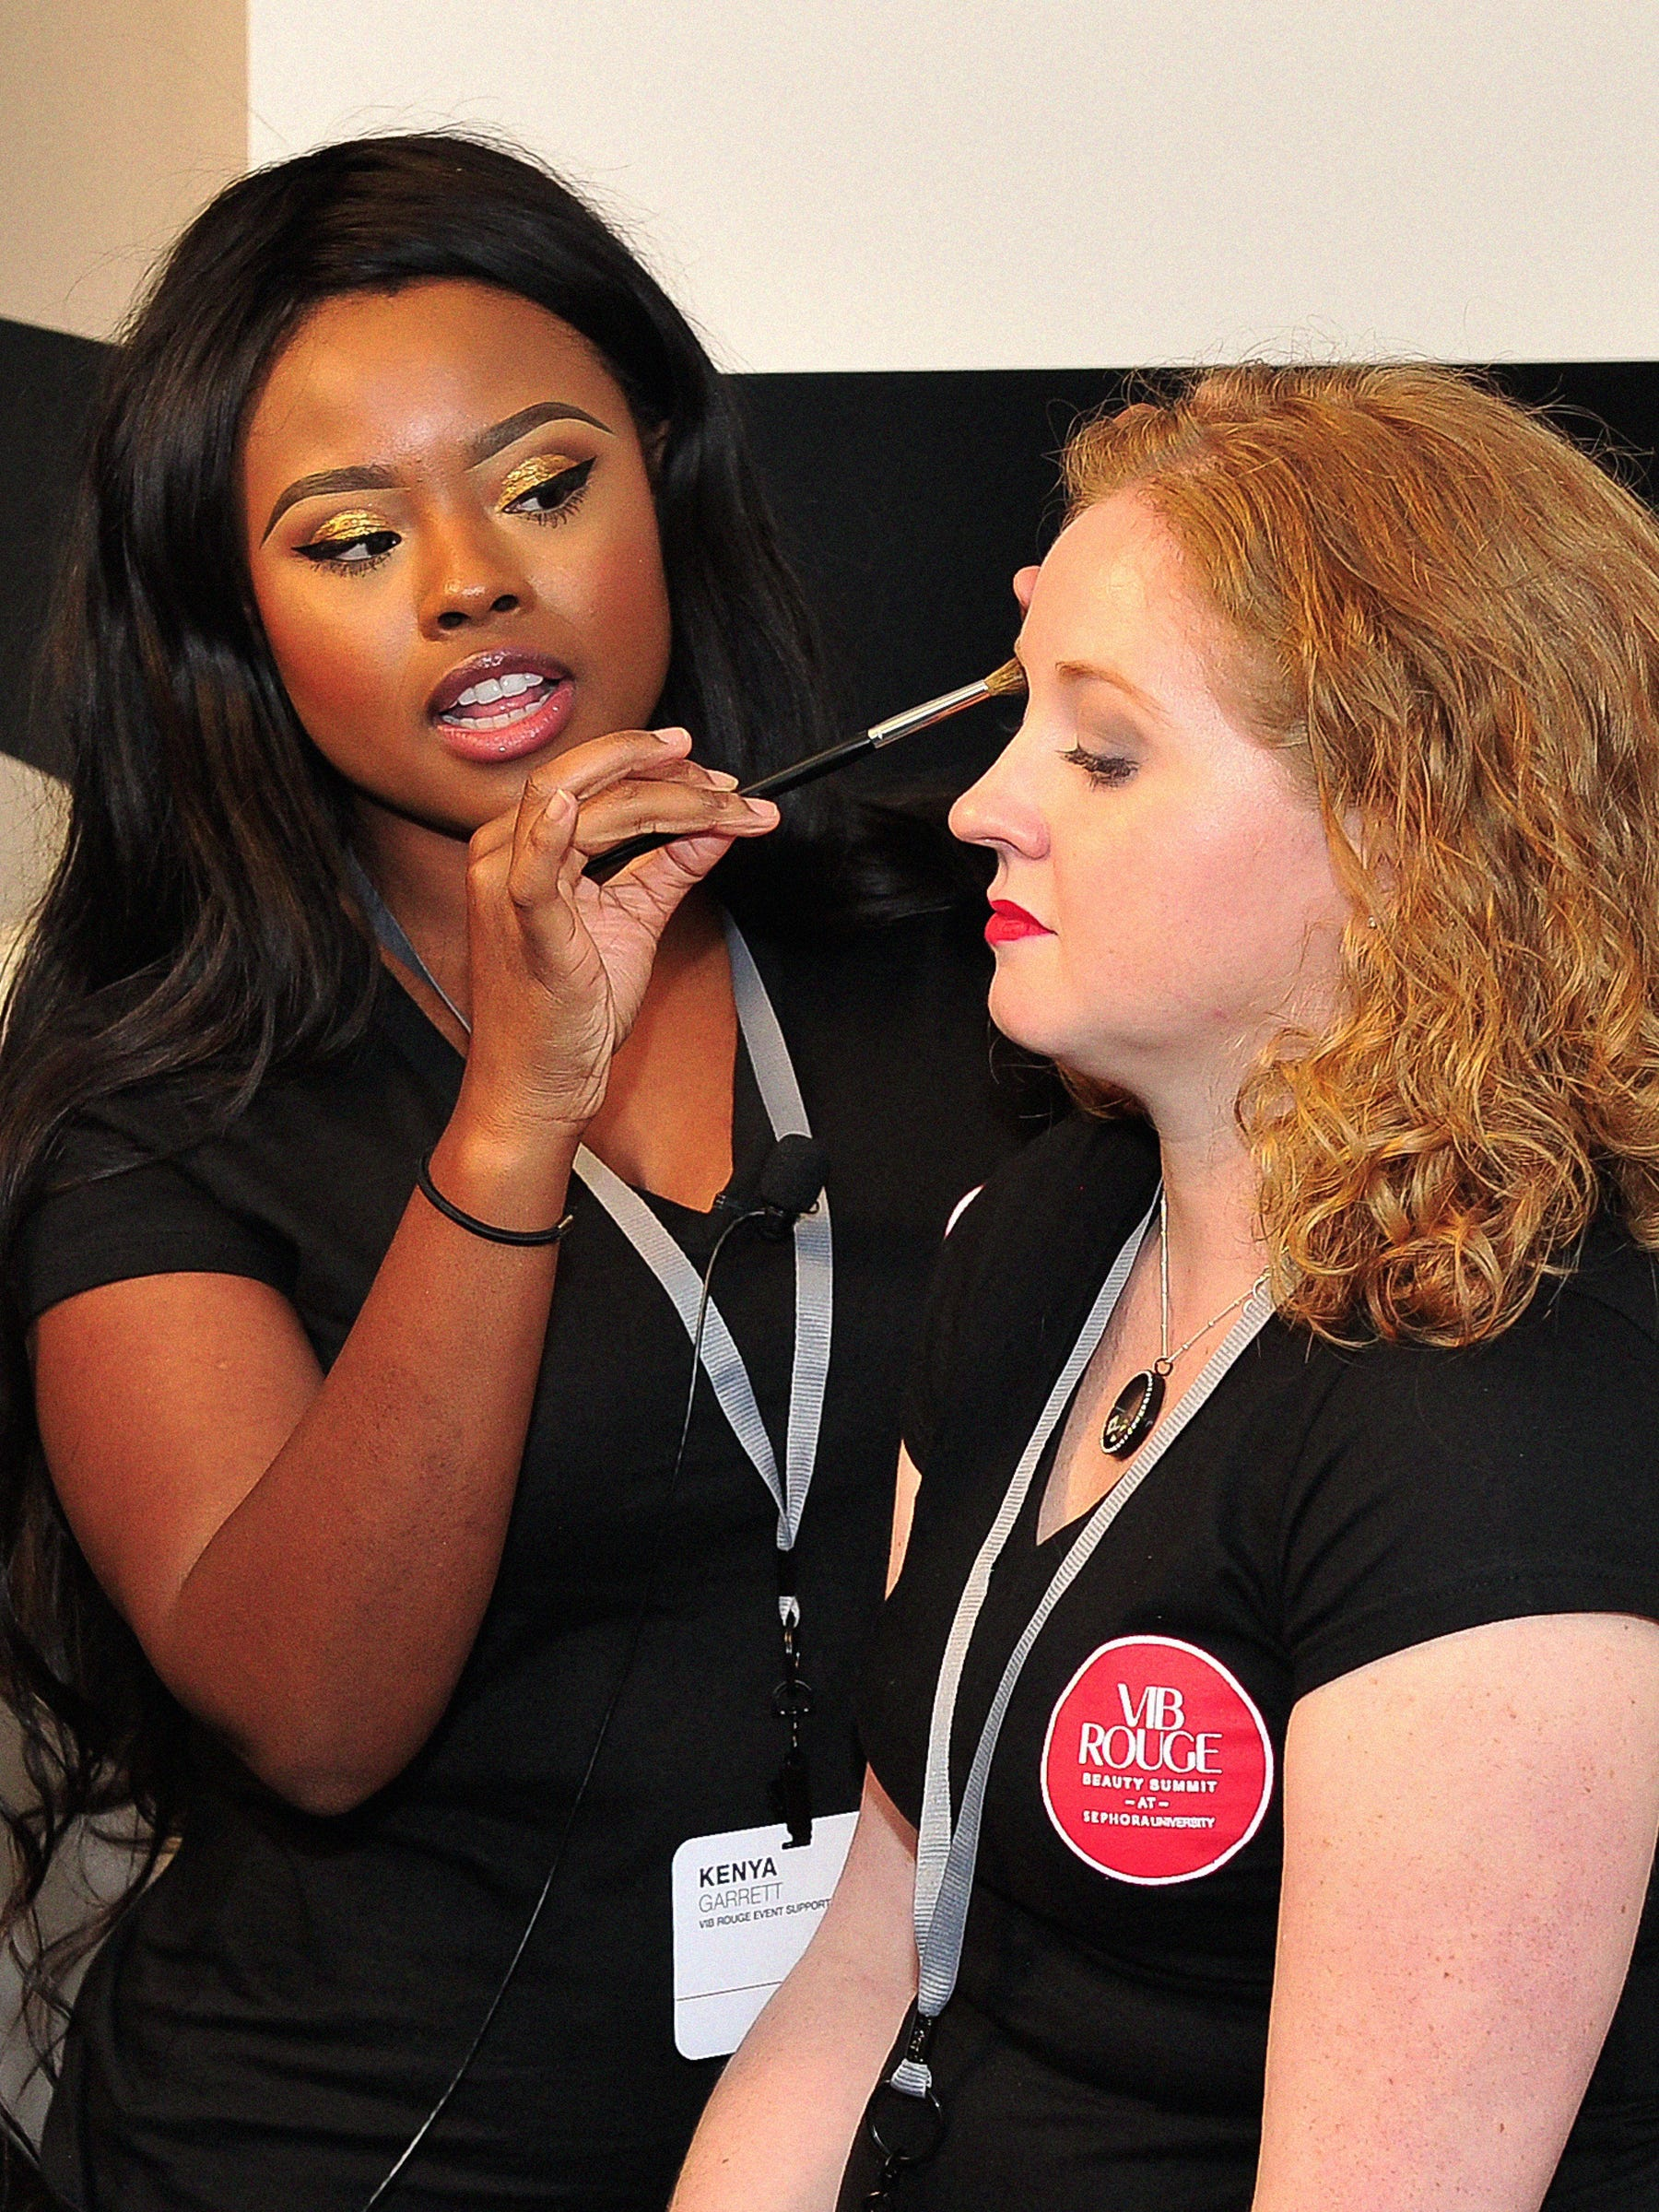 Images of Sephora Makeup Lessons - Asatan